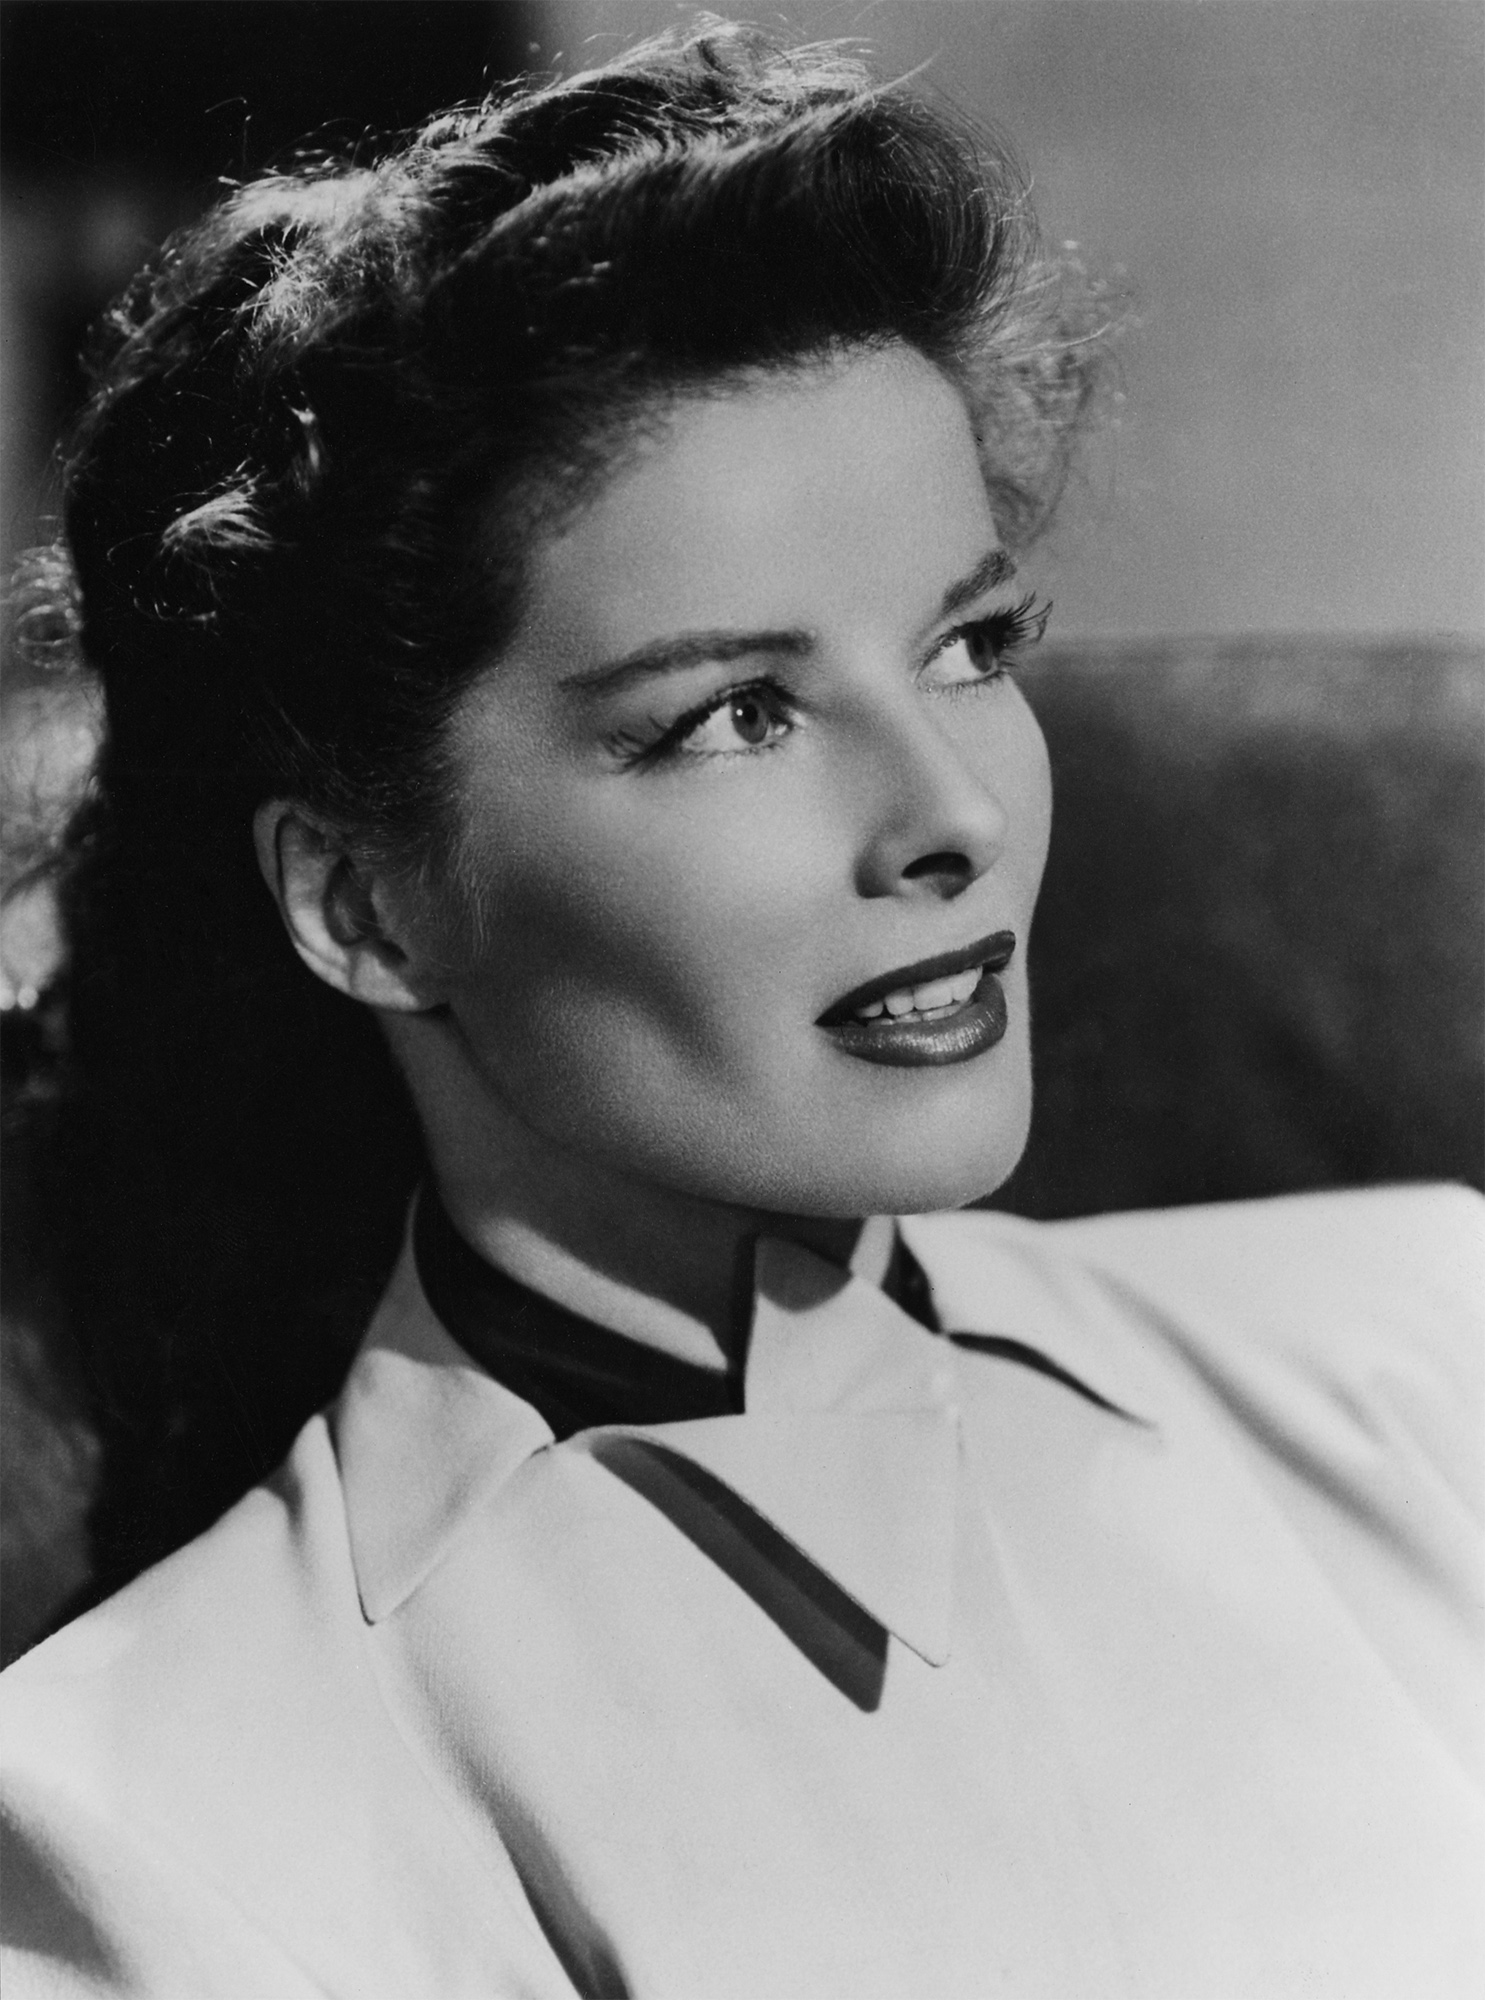 katherine hepburn Auto suggestions are available once you type at least 3 letters use up arrow (for mozilla firefox browser alt+up arrow) and down arrow (for mozilla firefox browser alt+down arrow) to review and enter to select.